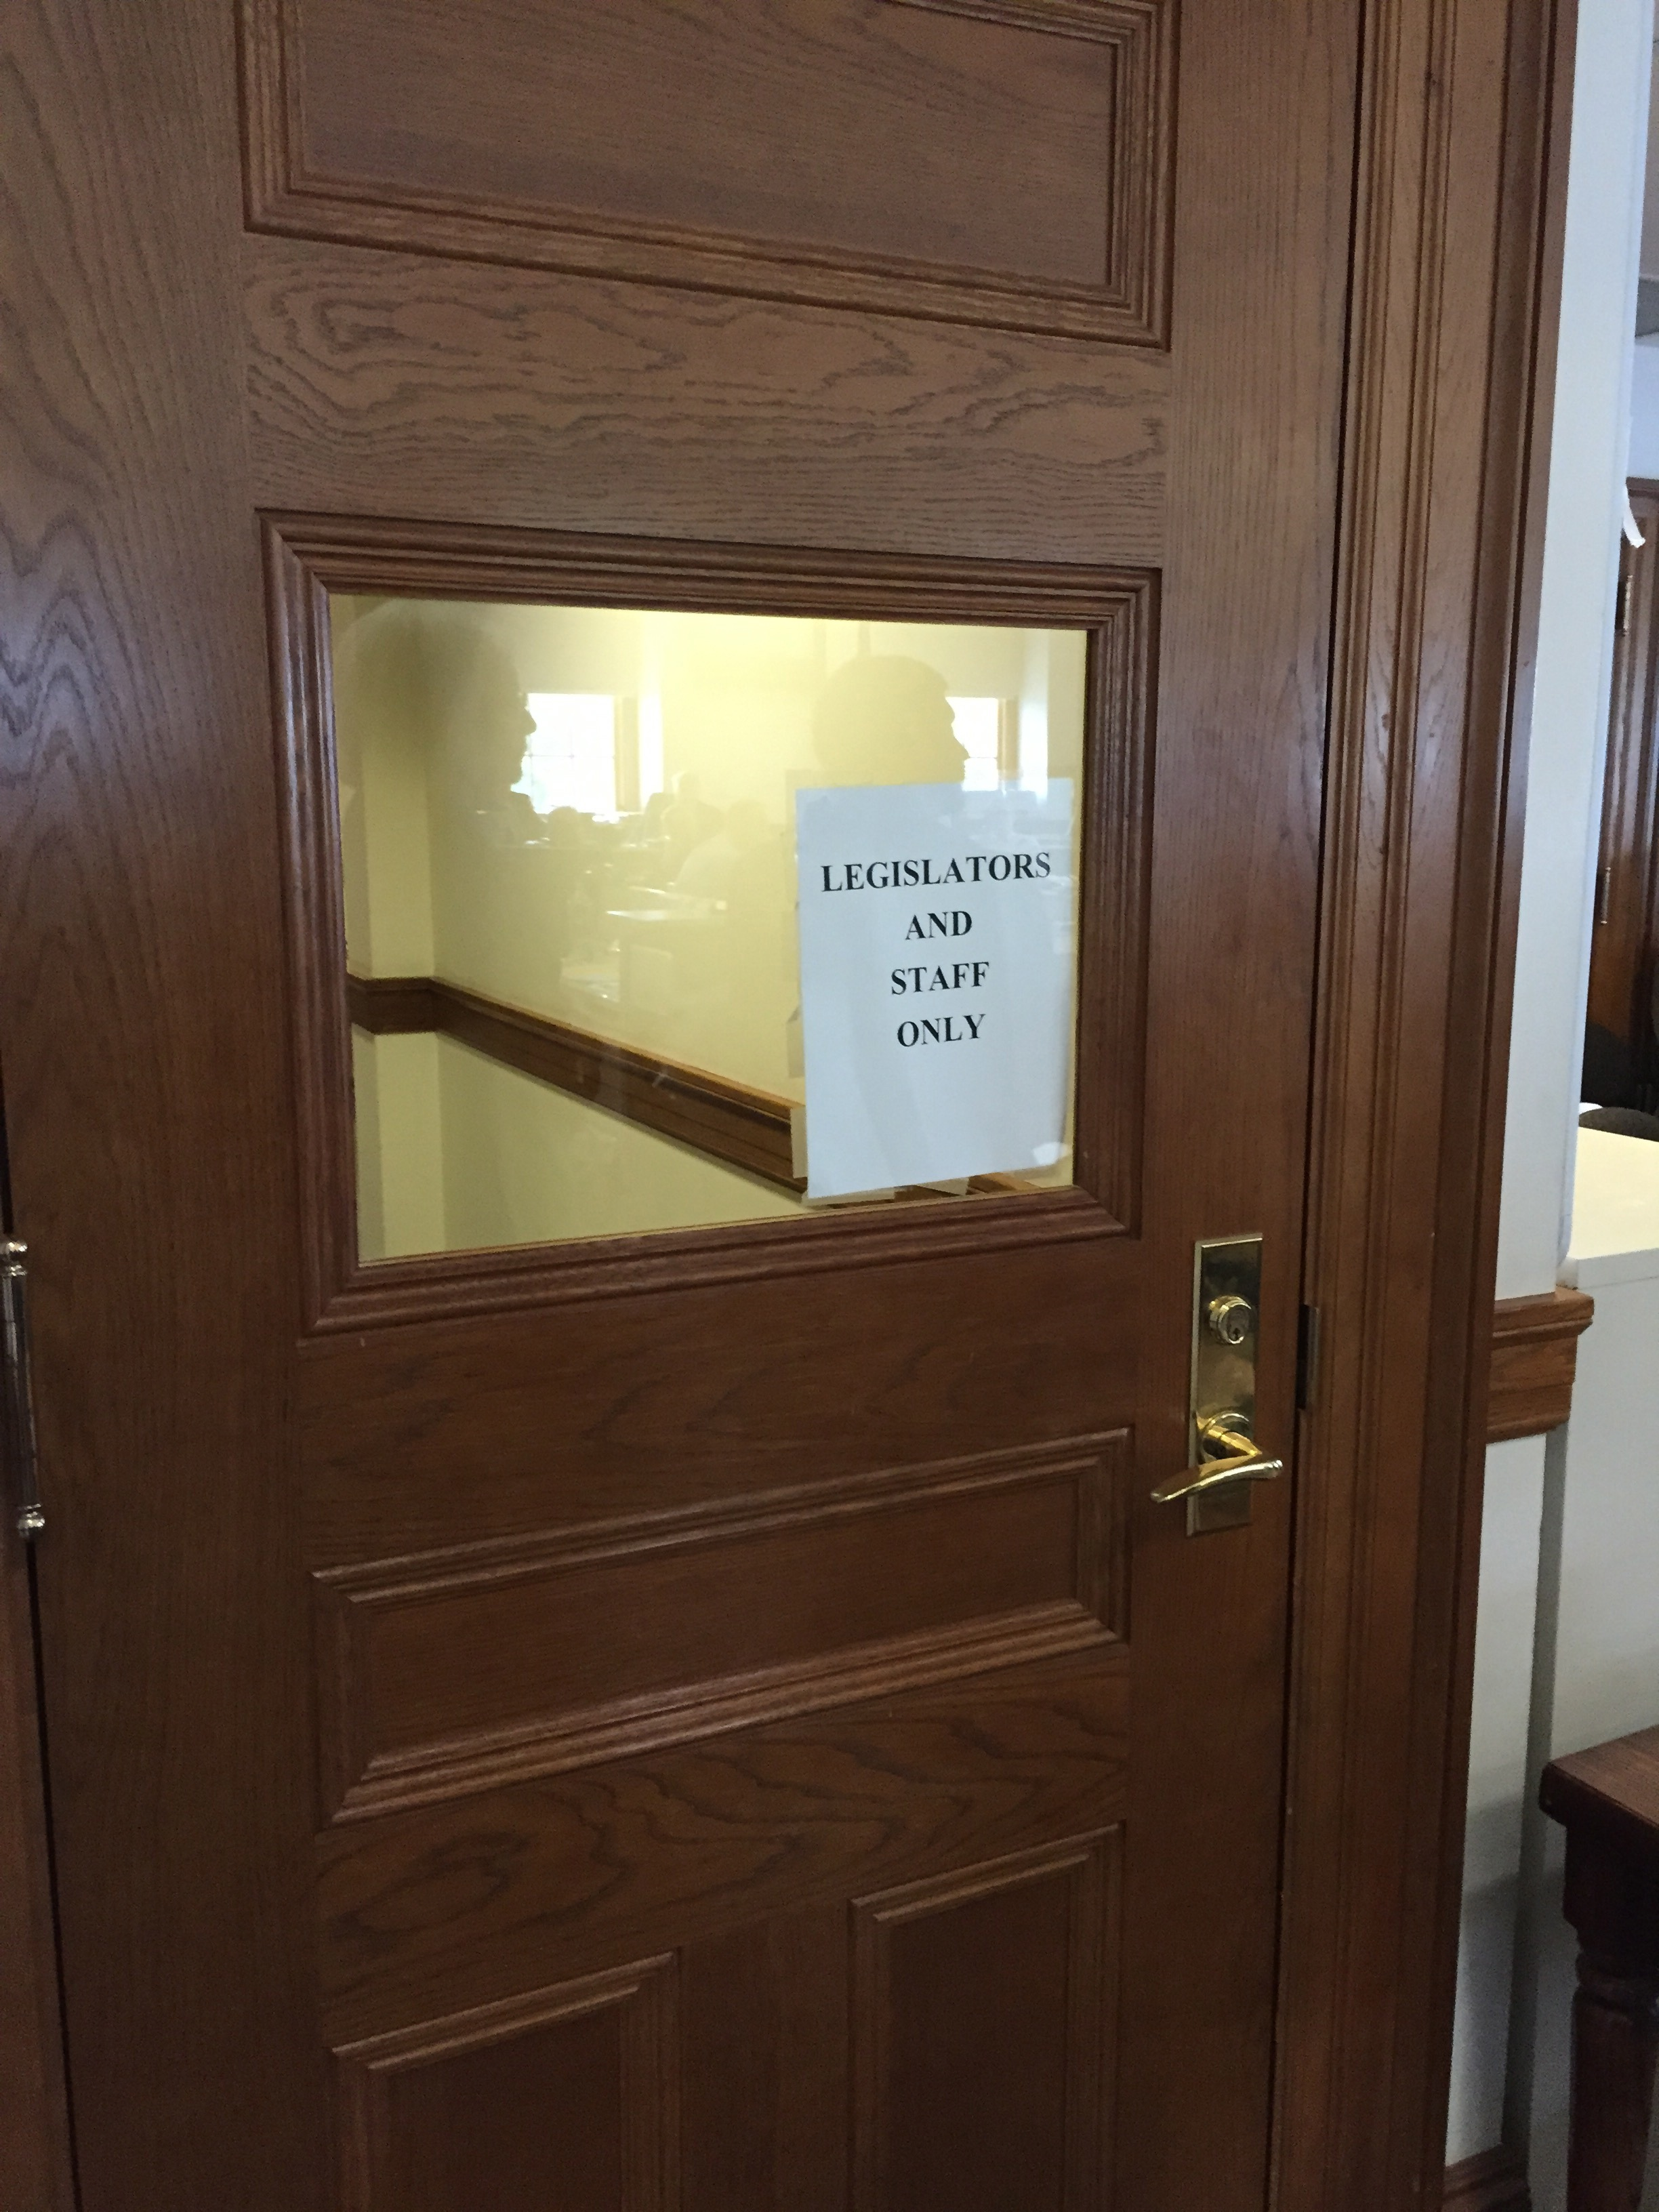 Closed door: Legislators conducting public business in private ...